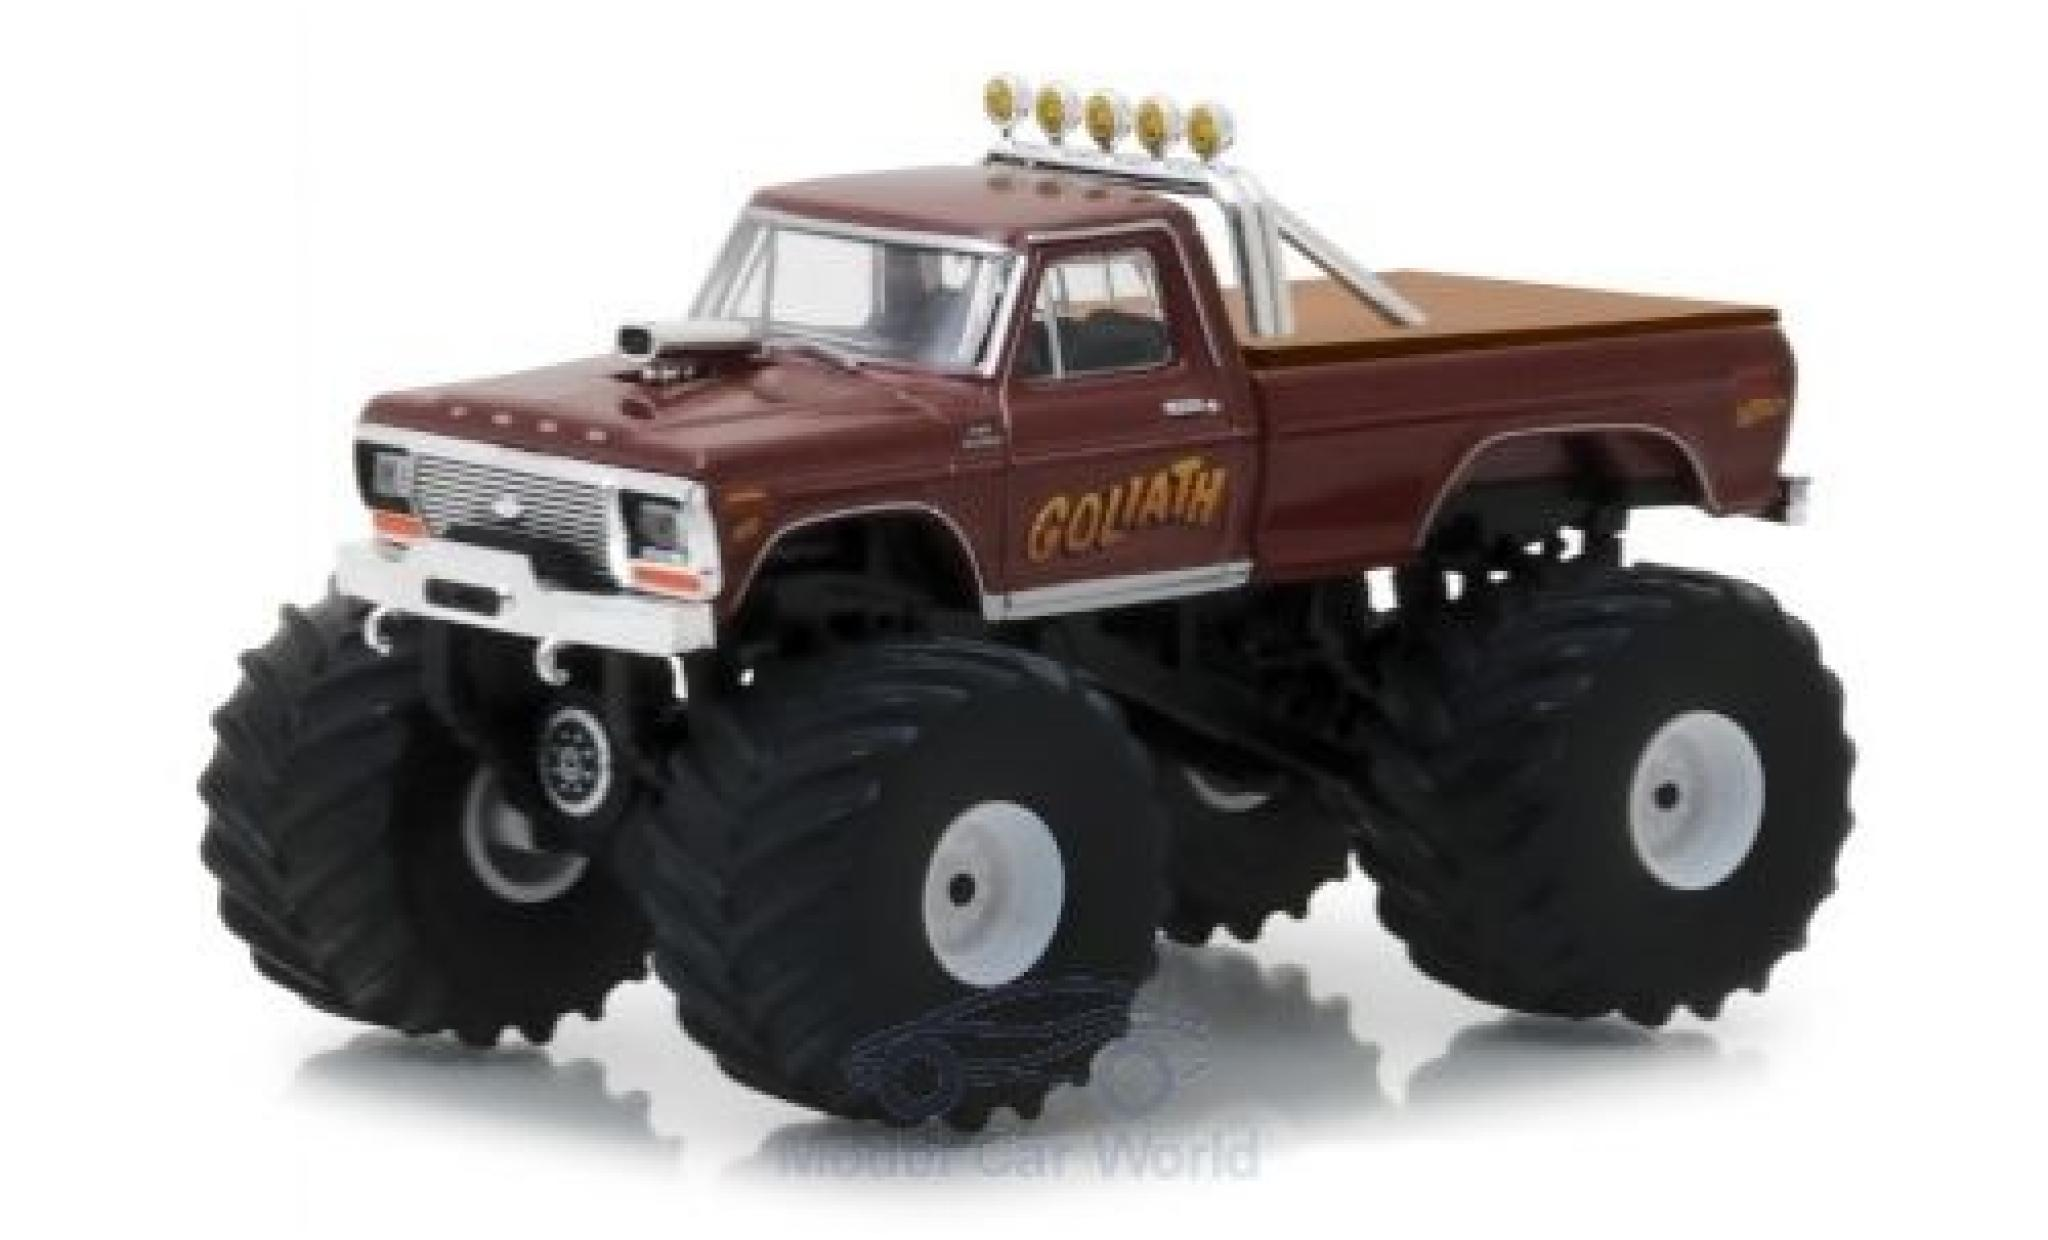 Ford F-250 1/64 Greenlight Monster Truck métallisé marron Goliath 1979